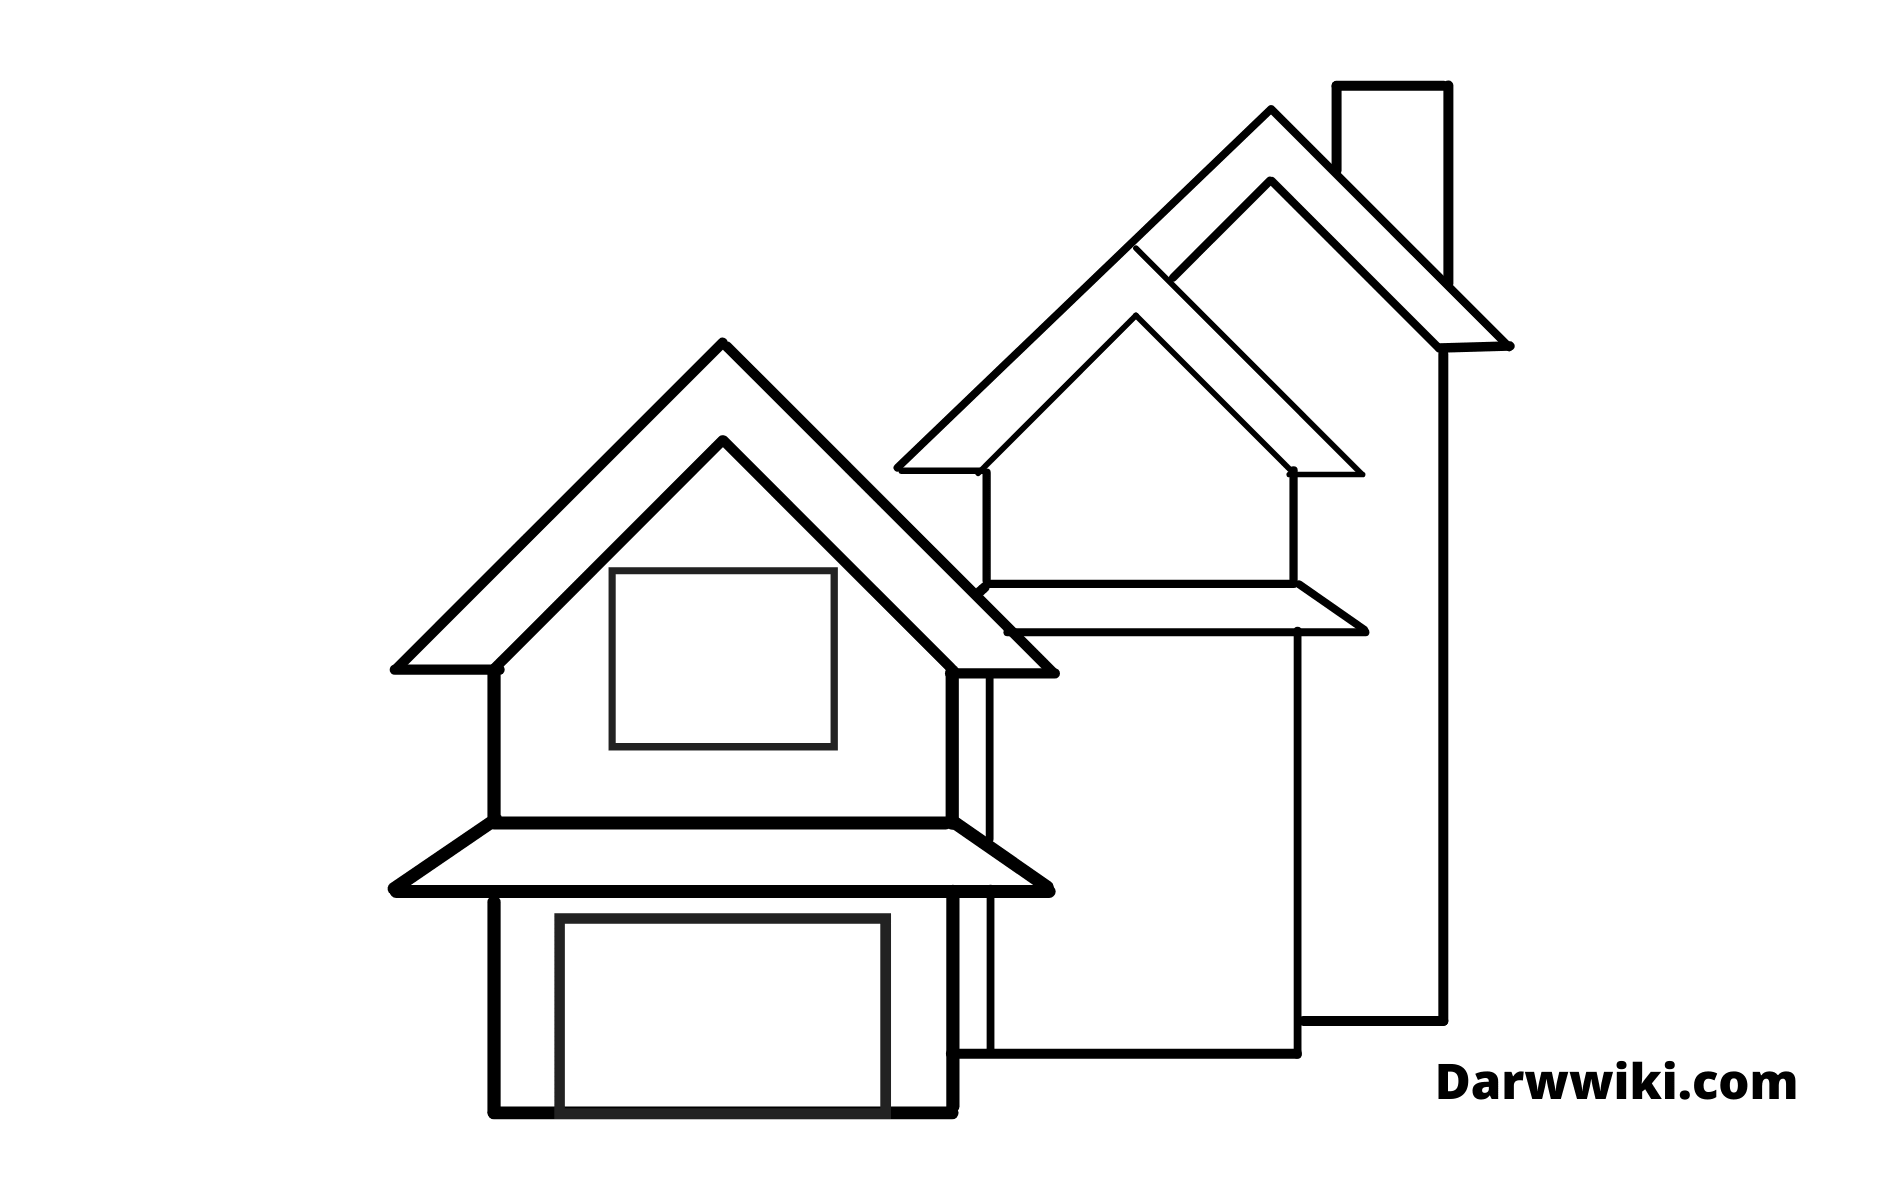 How To Draw House Step 6 - Draw the Chimney and Wall Outline